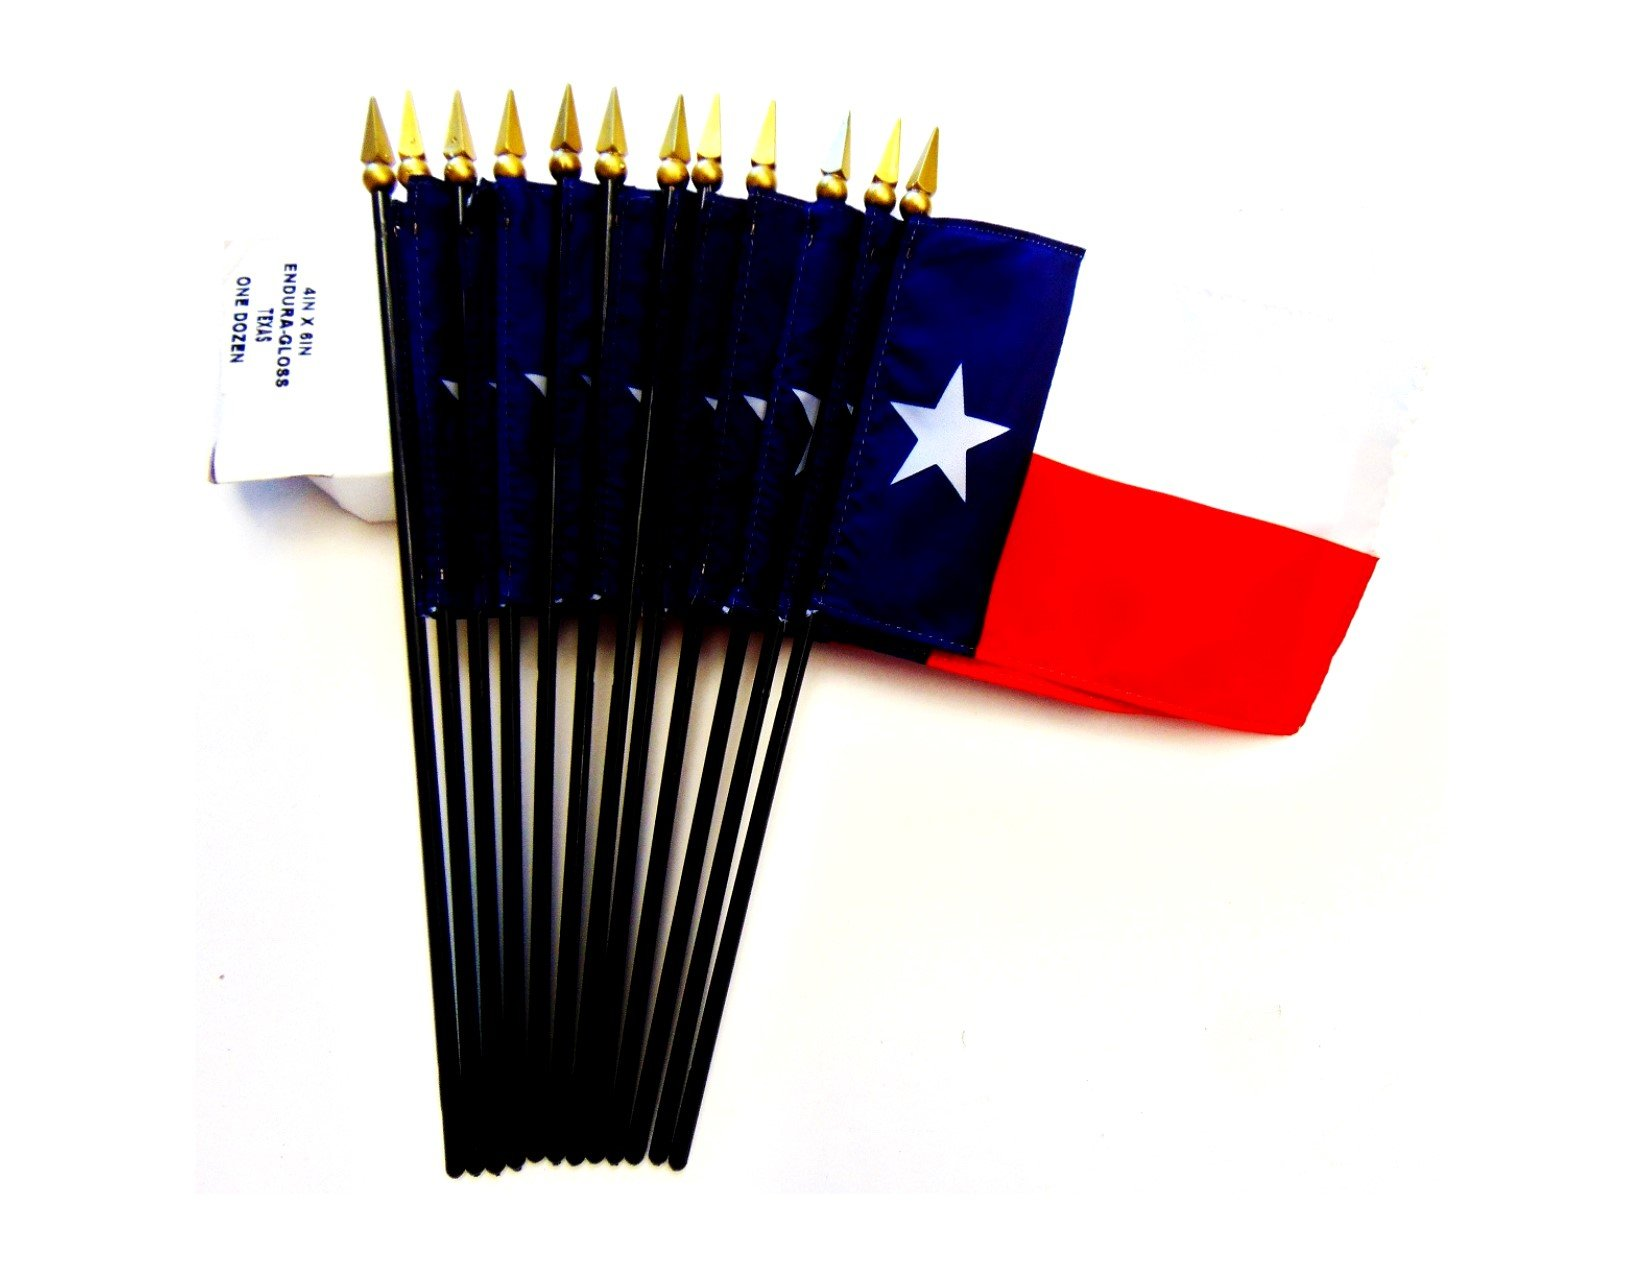 MADE IN USA!! Box of 12 Texas 4''x6'' Miniature Desk & Table Flags; 12 American Made Small Mini Texas State Flags in a Custom Made Cardboard Box Specifically Made for These Flags